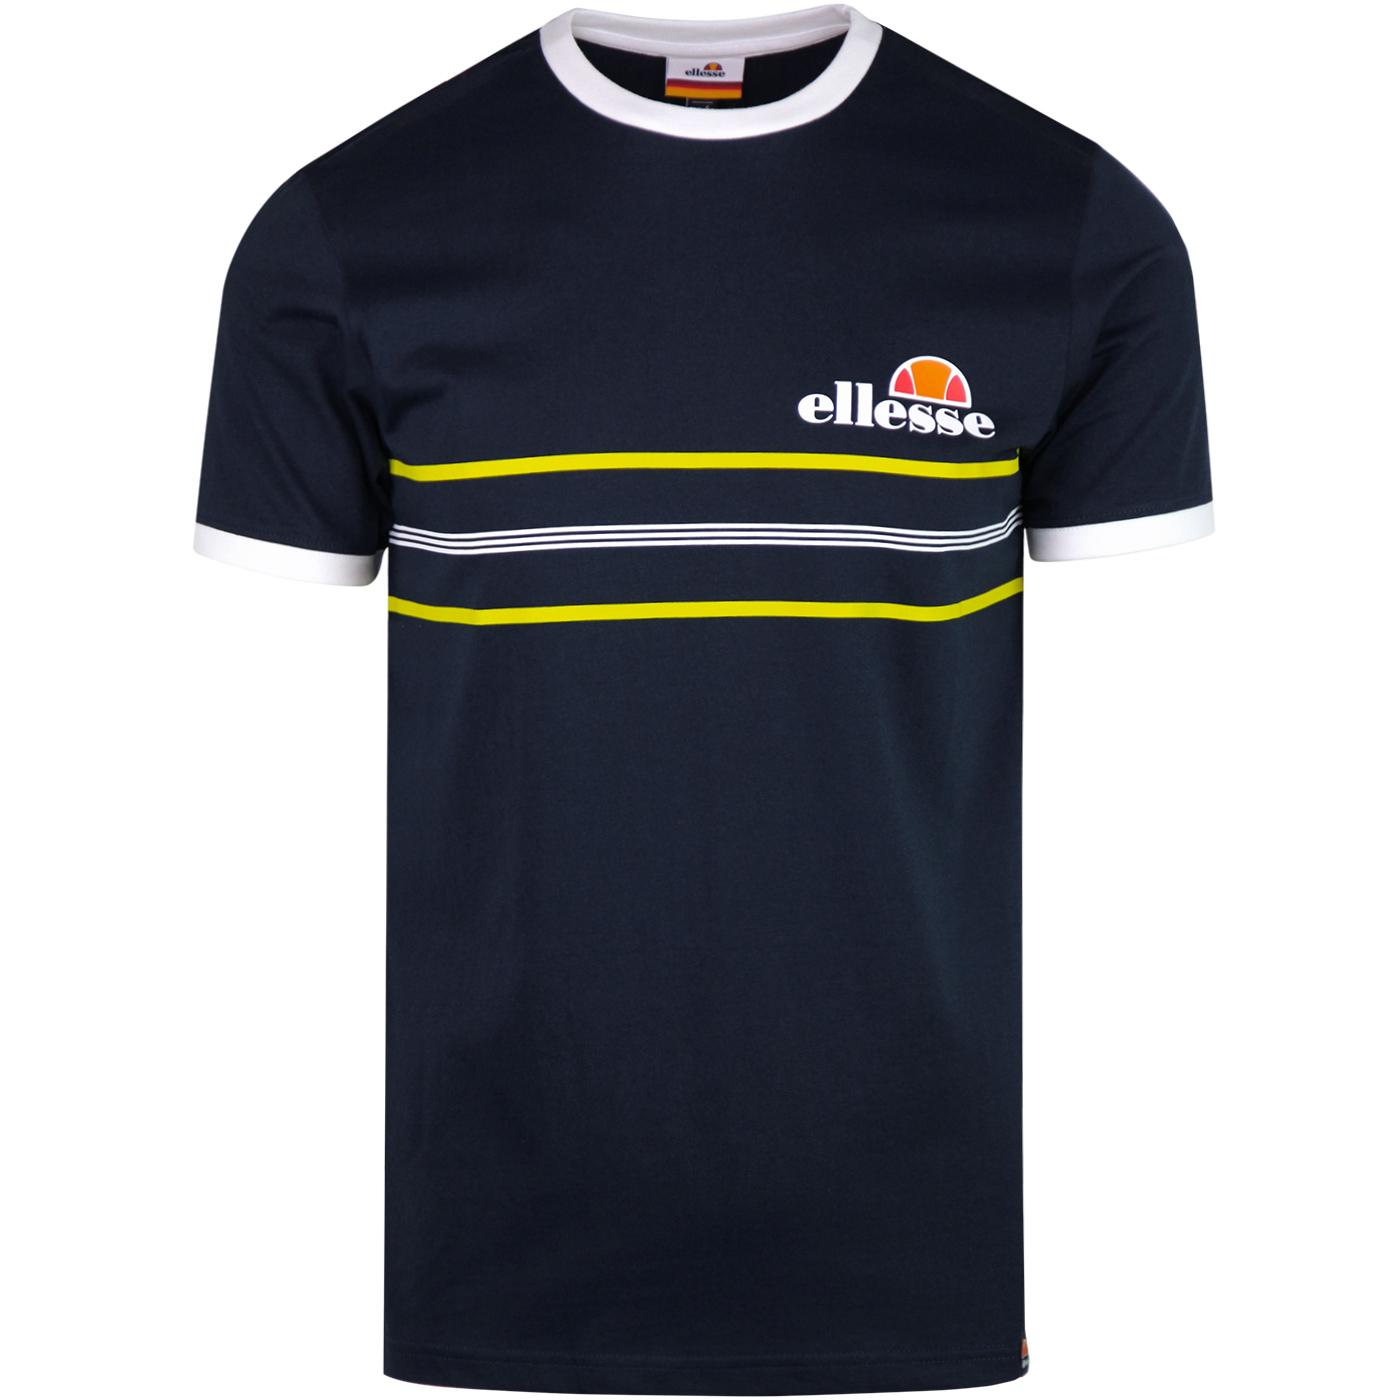 Gentario ELLESSE Retro Striped Contrast Tee (Navy)